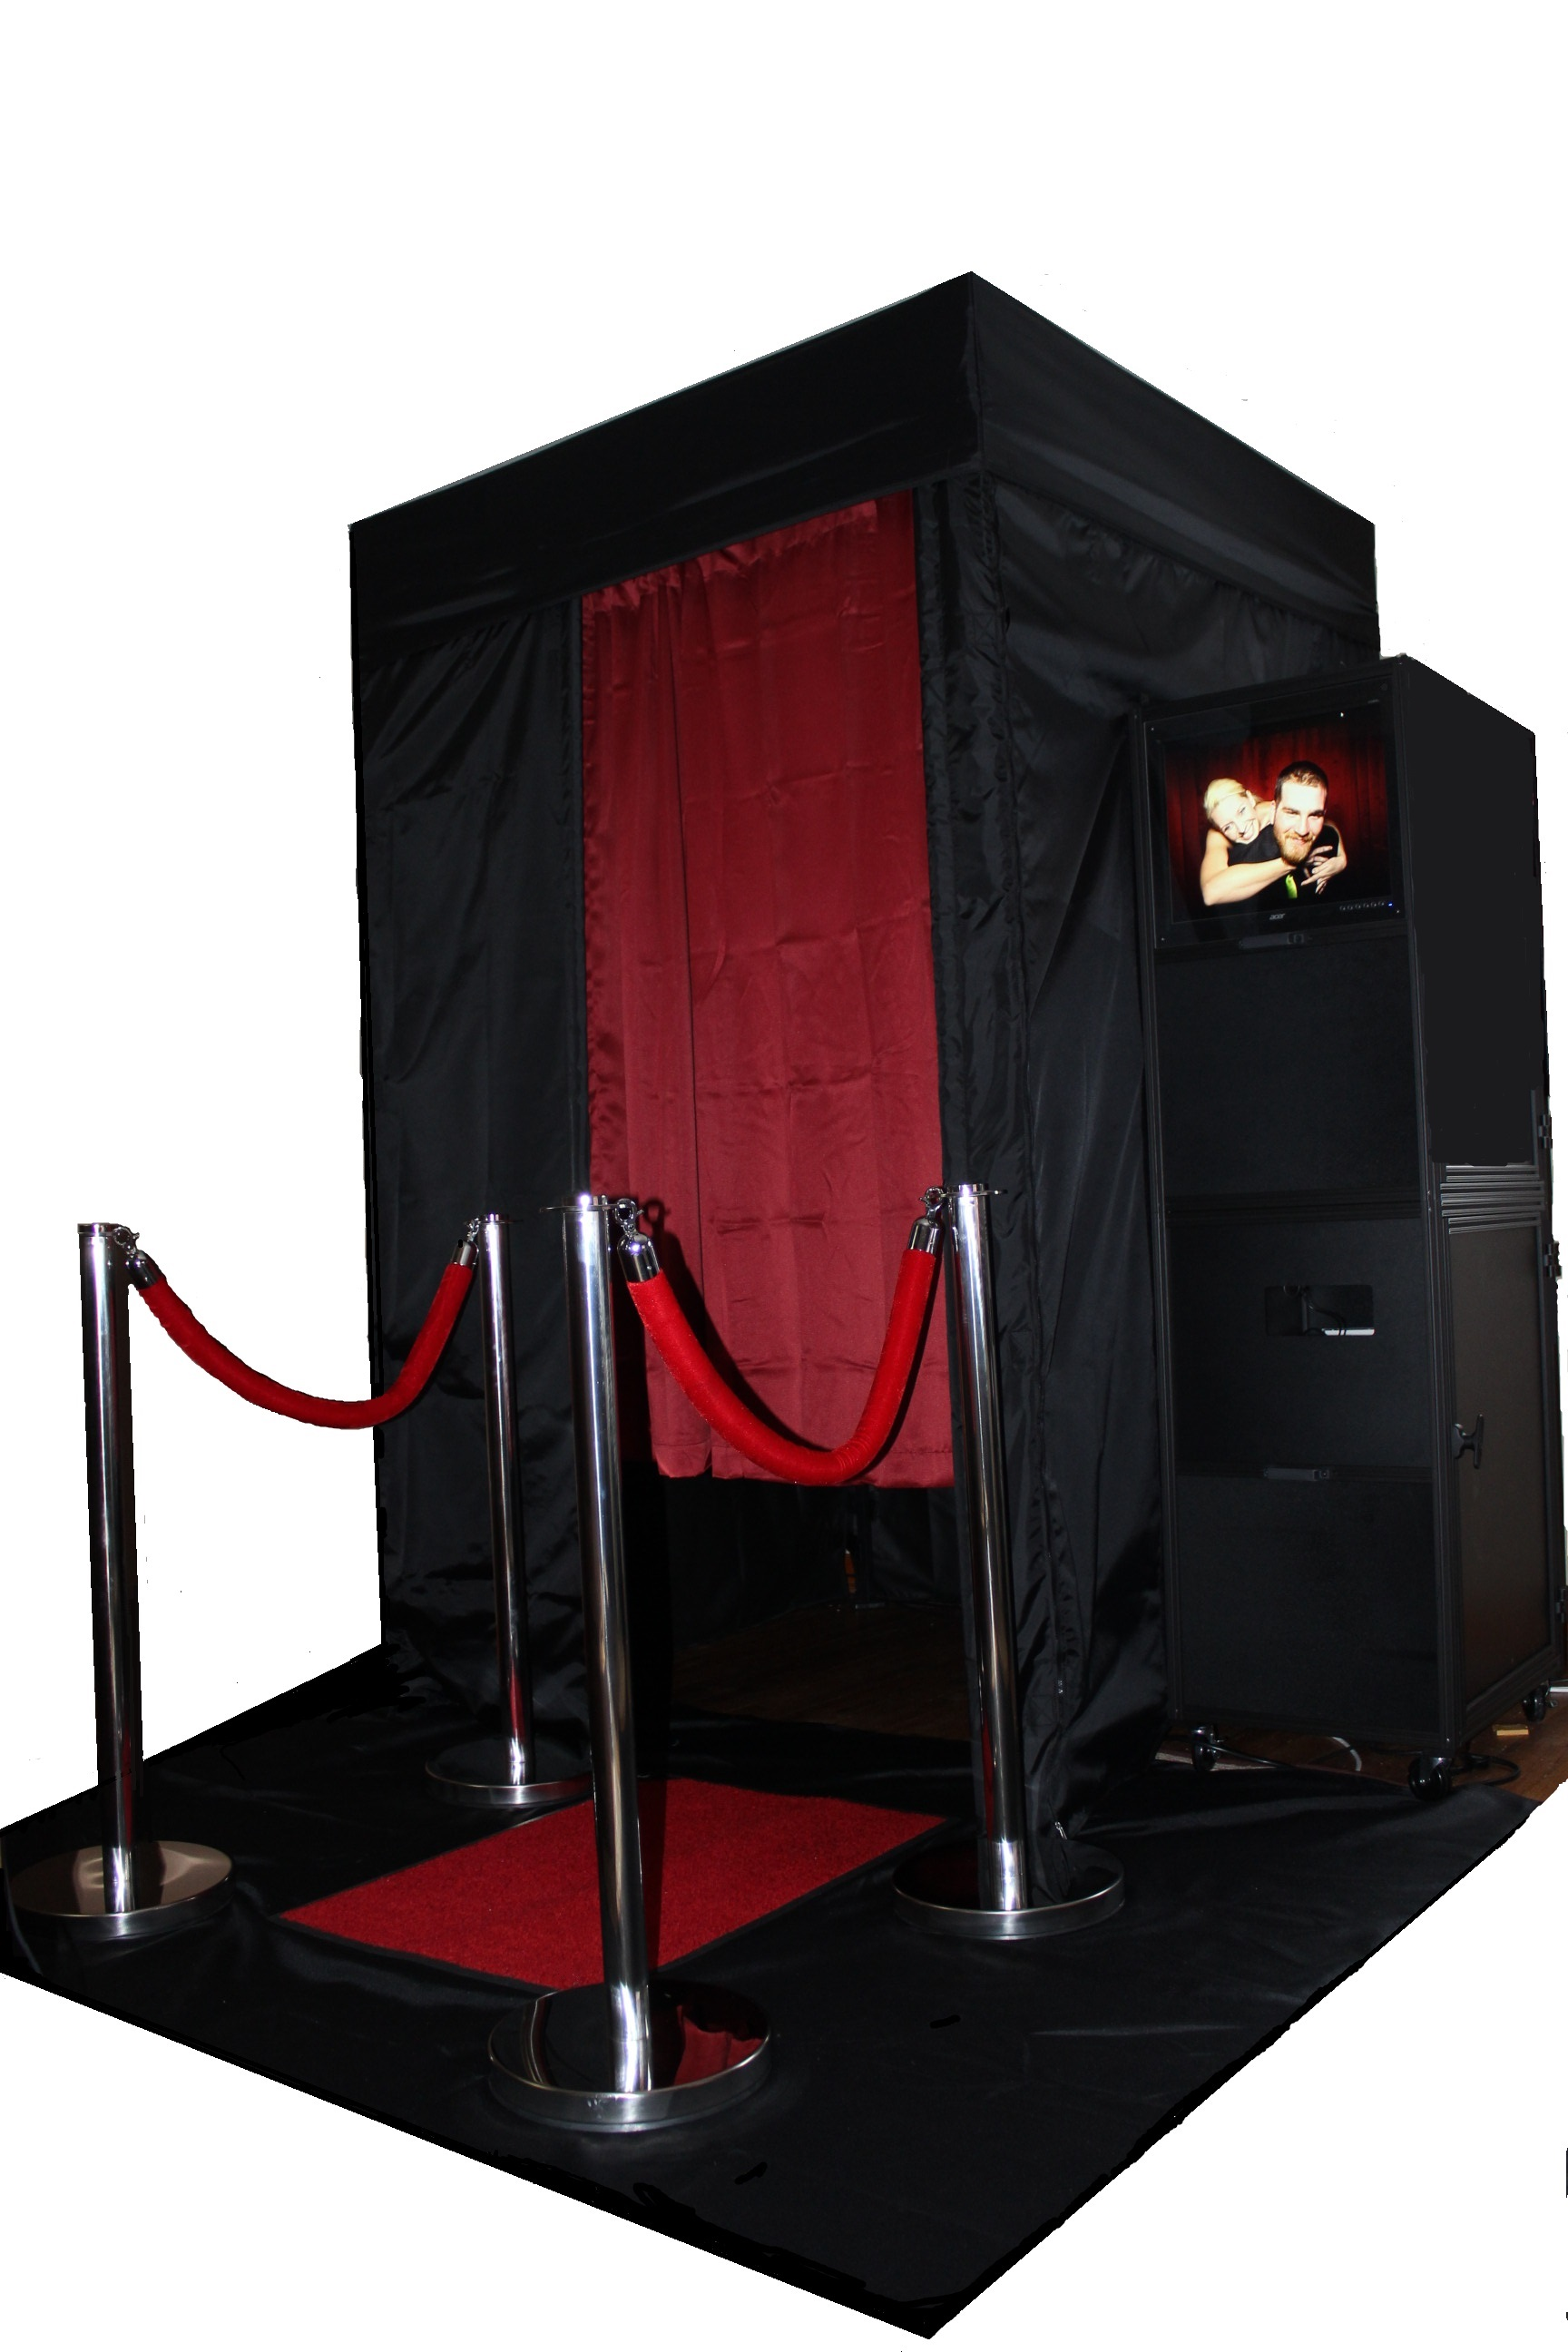 photo booth, photo booth rental